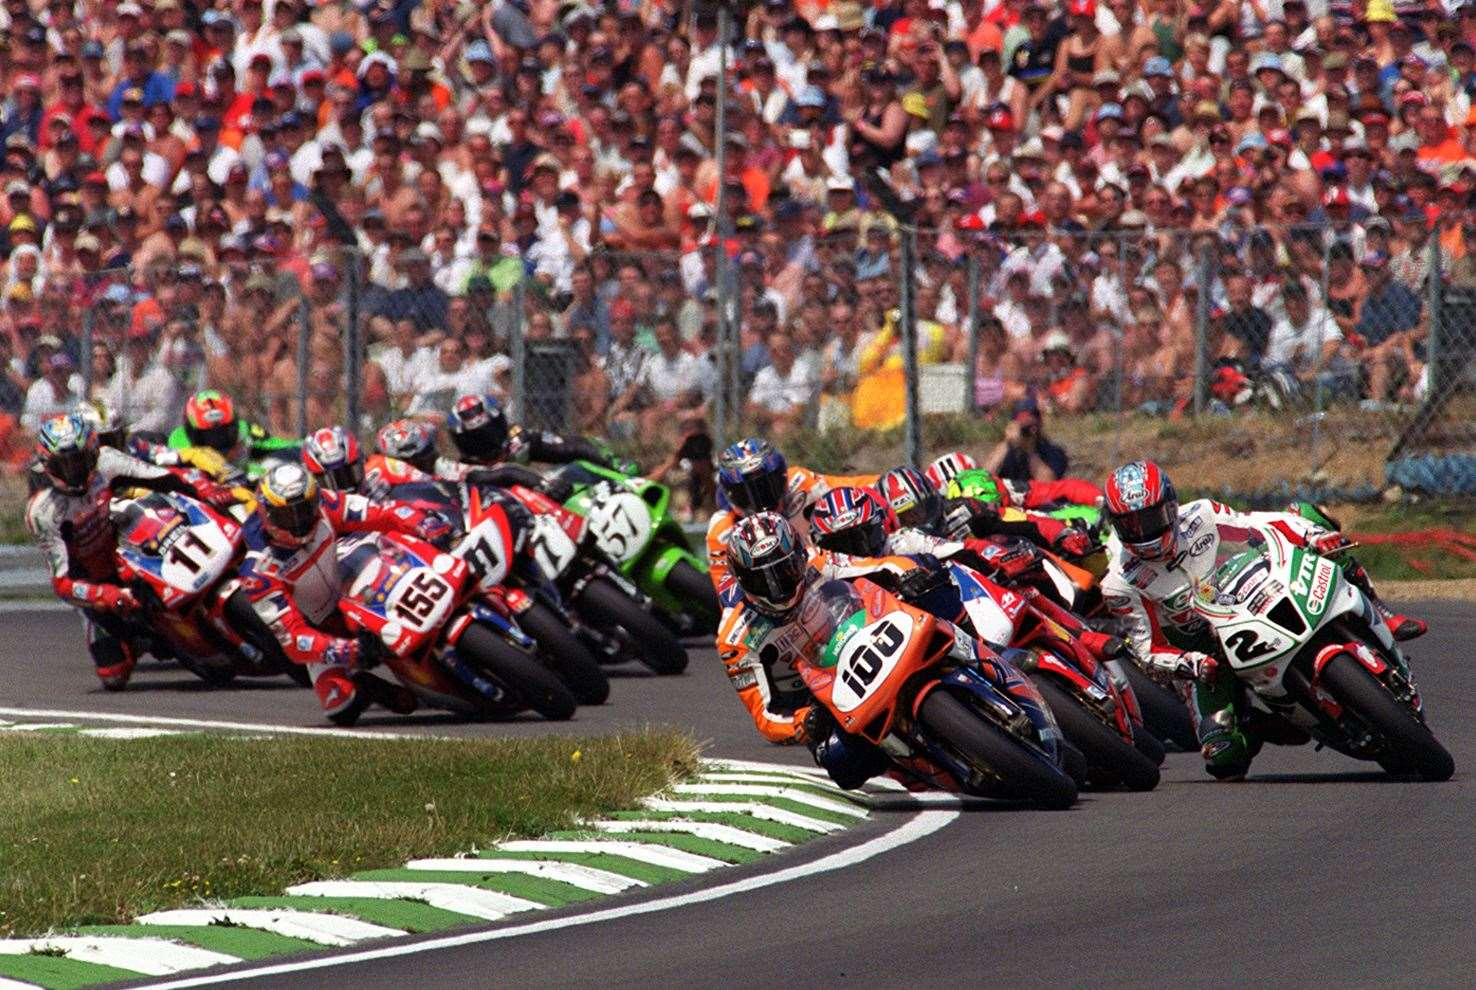 Neil Hodgson (100) pleases the huge crowd by leading the World Superbike pack into Paddock Hill Bend in 2002. Picture: Andy Payton